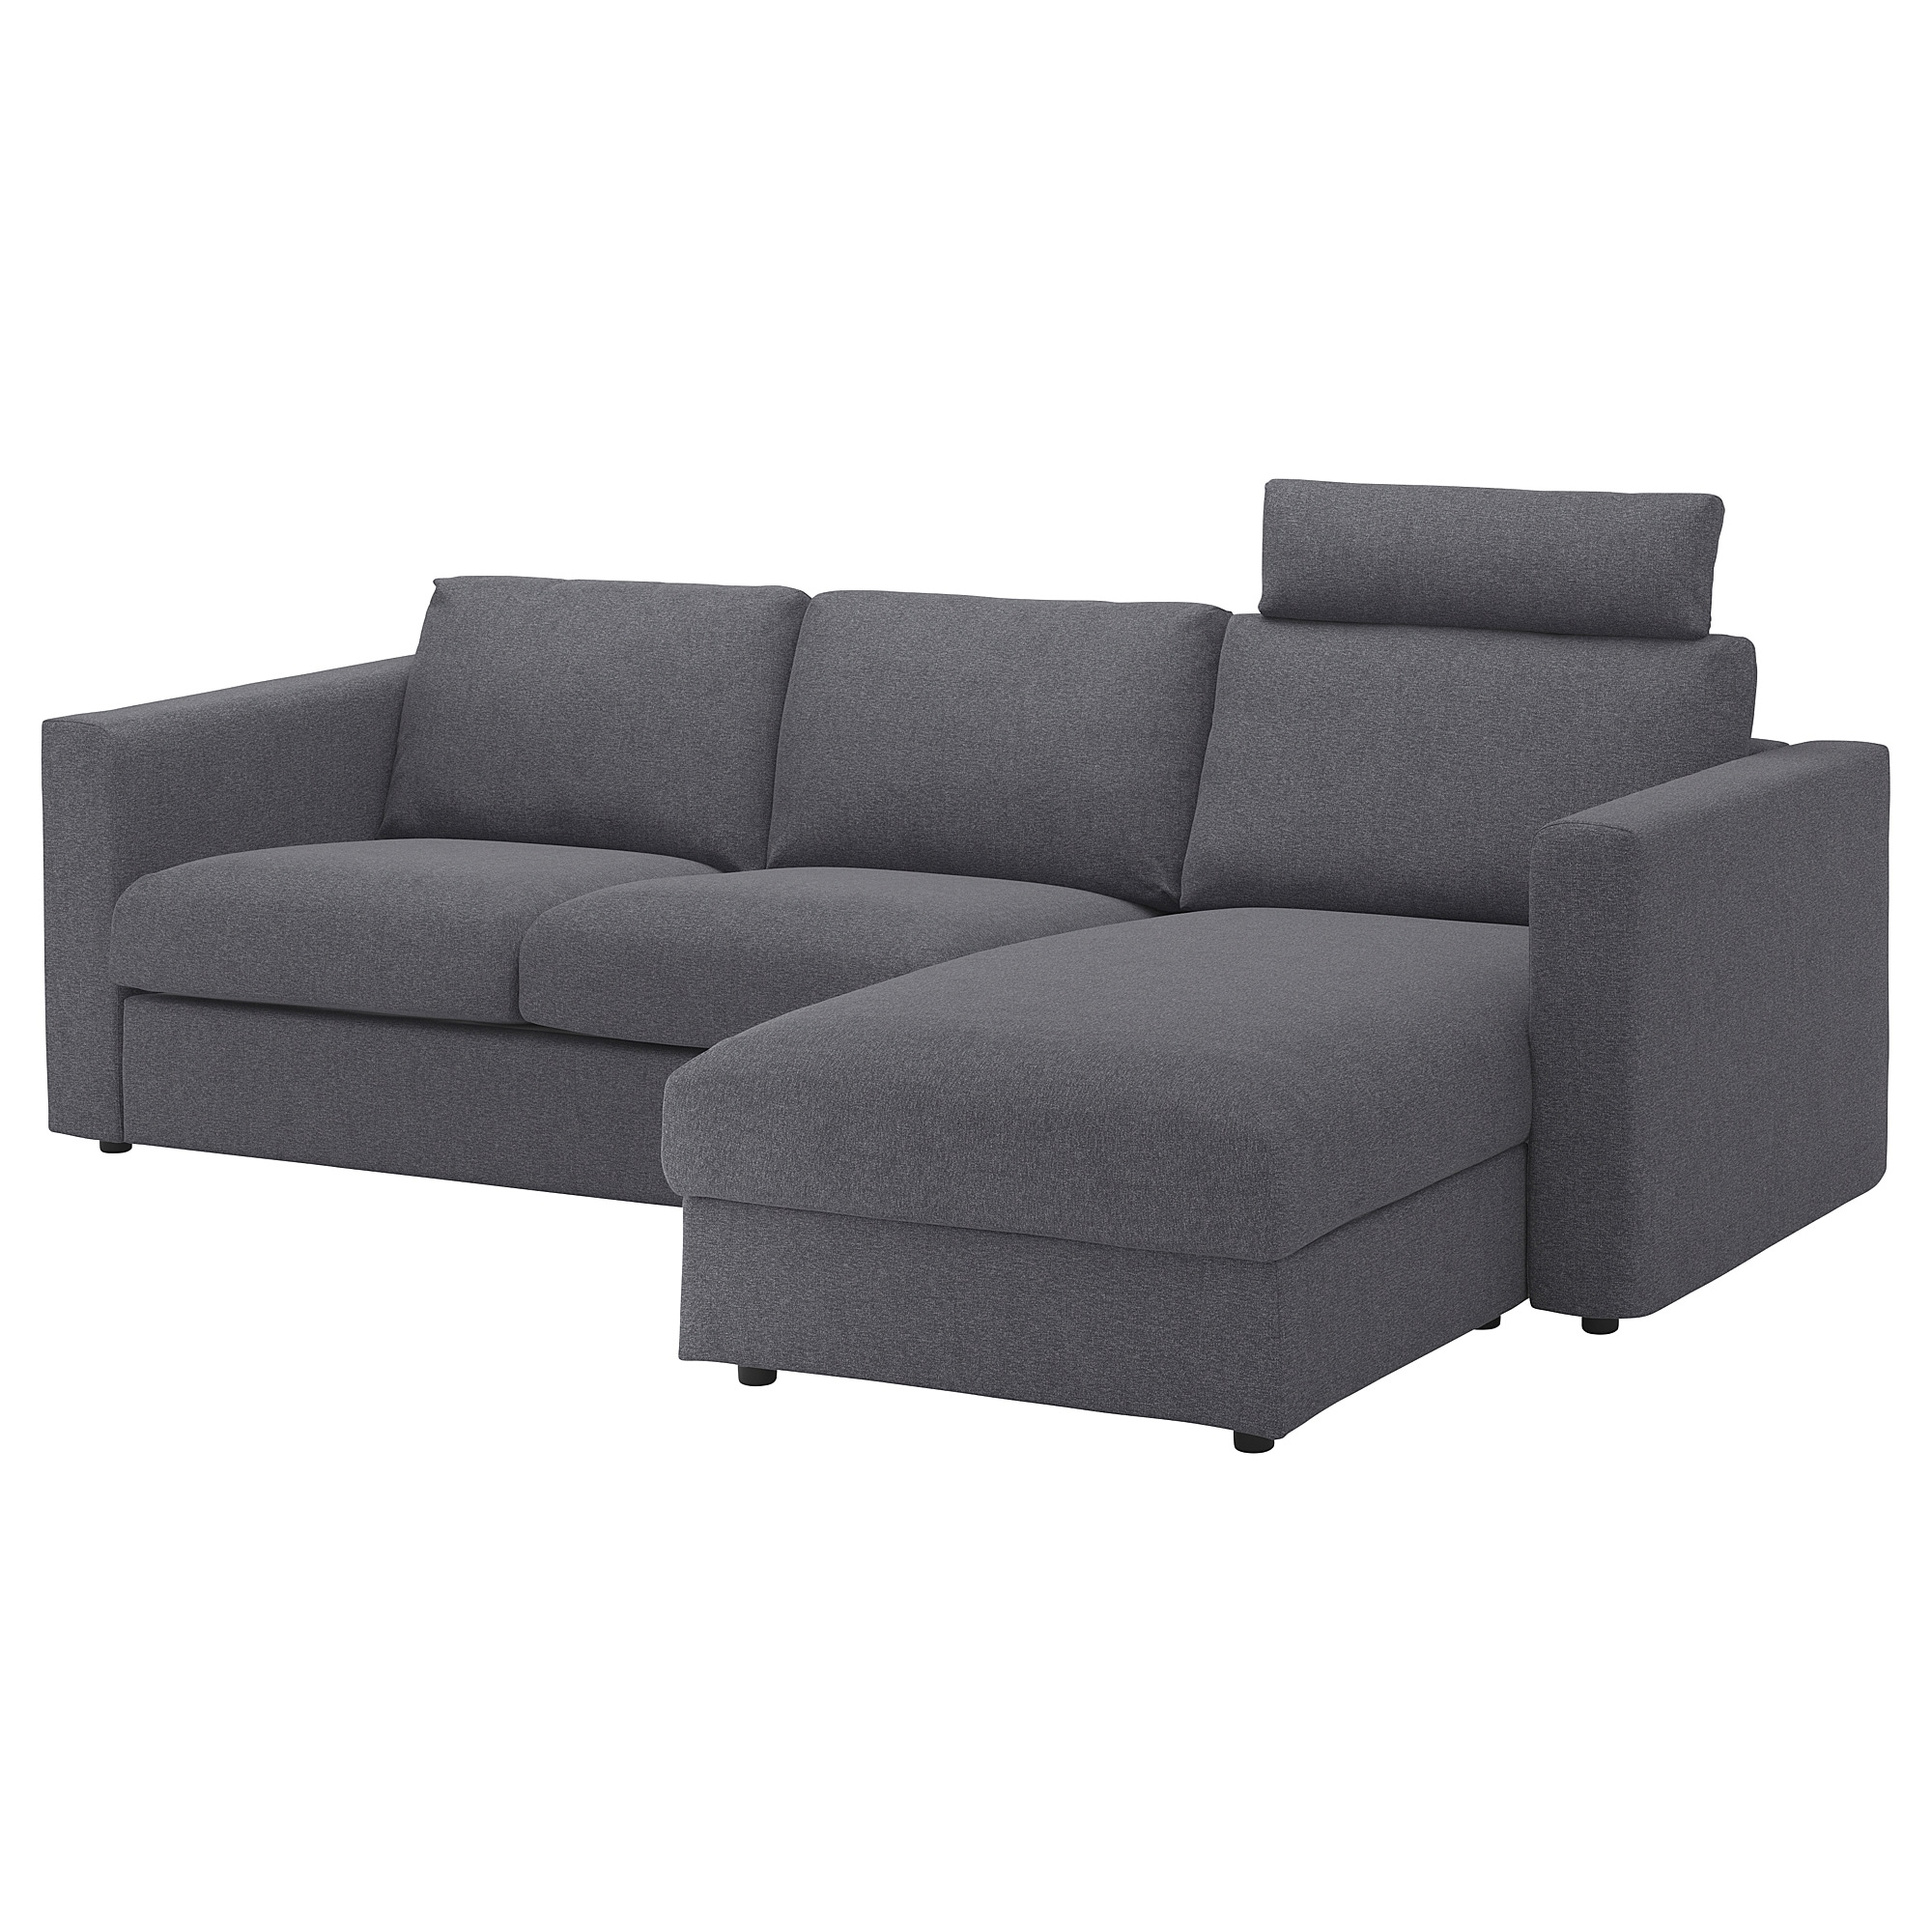 Vimle 3 Seat Sofa With Chaise Longue With Headrest Gunnared